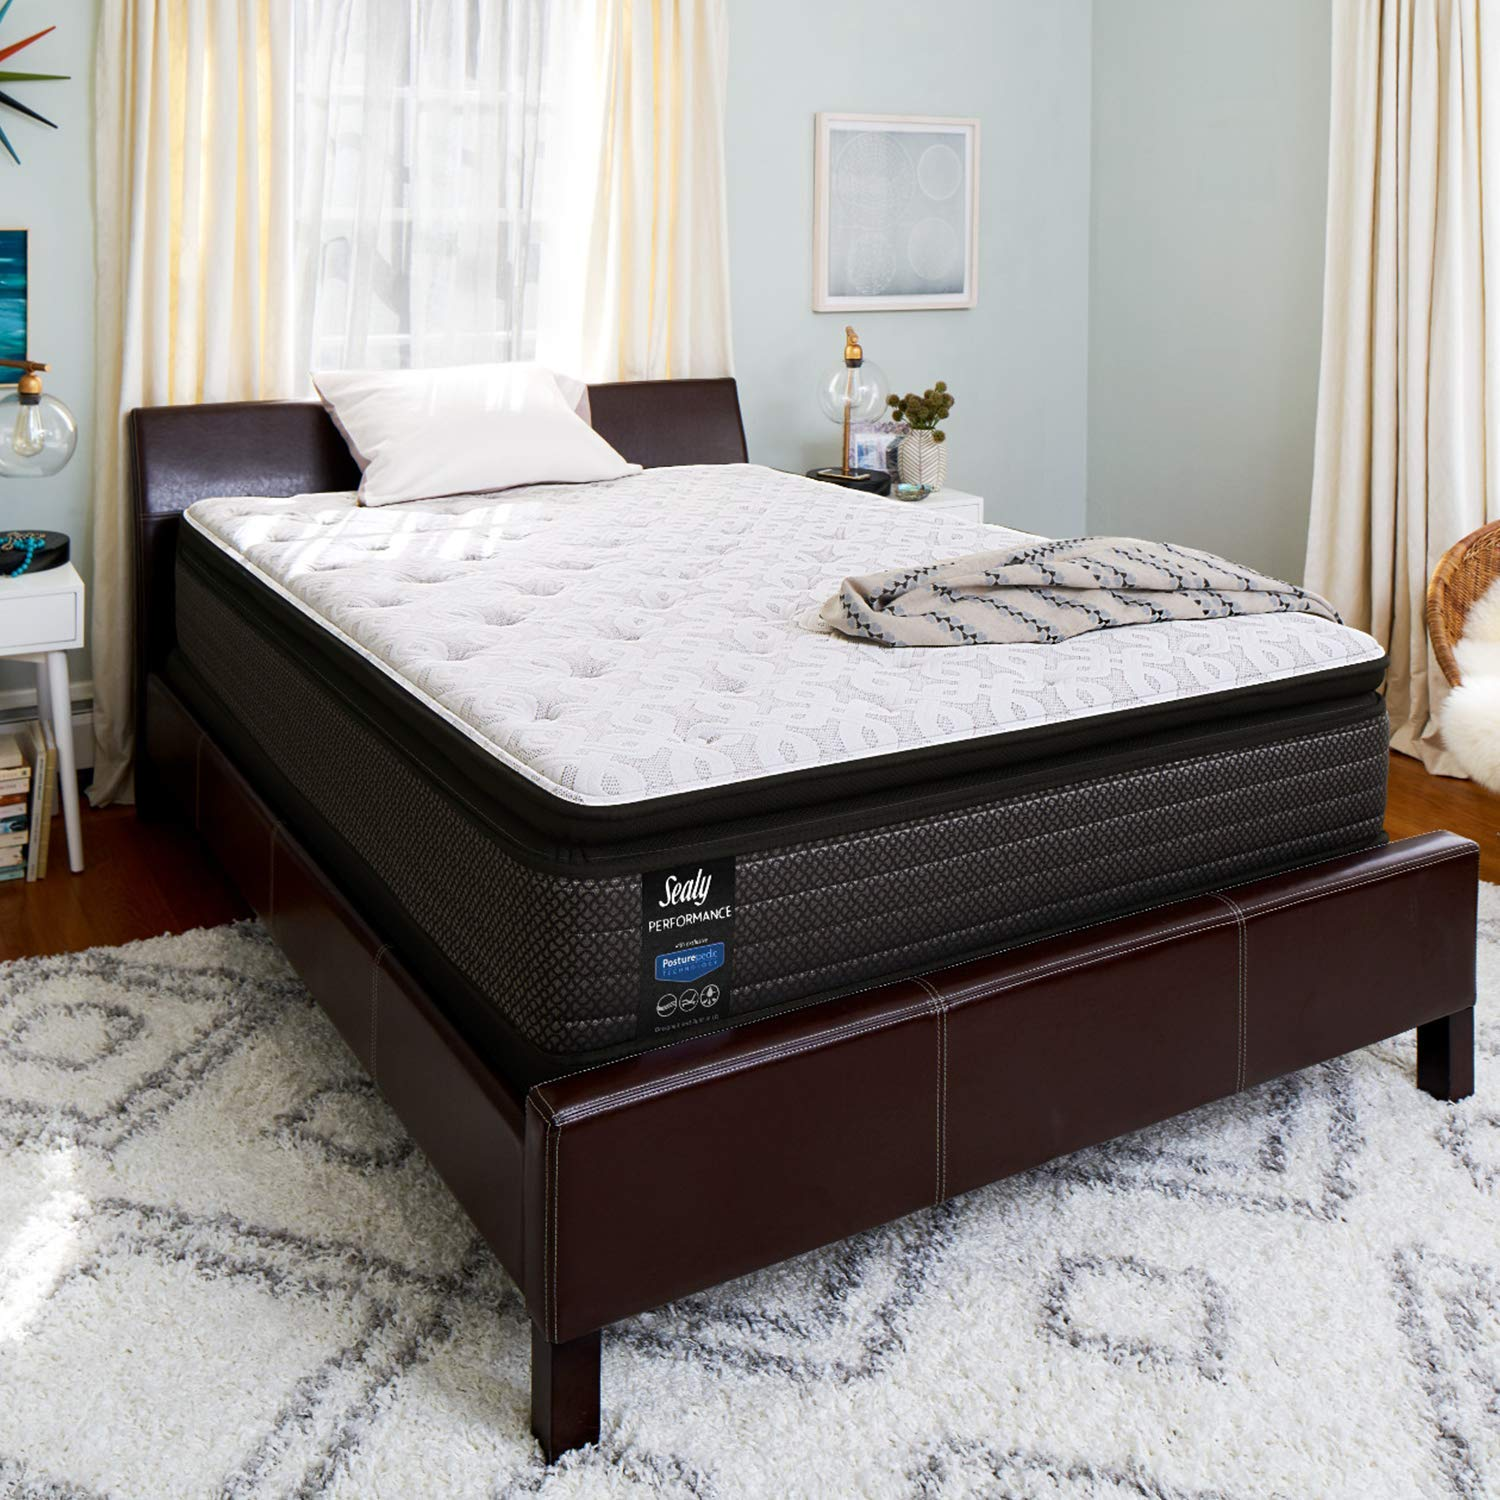 Sealy 14-Inch Cushion Firm Euro Pillow Top Mattress, King, Made in USA, 10 Year Warranty by Sealy